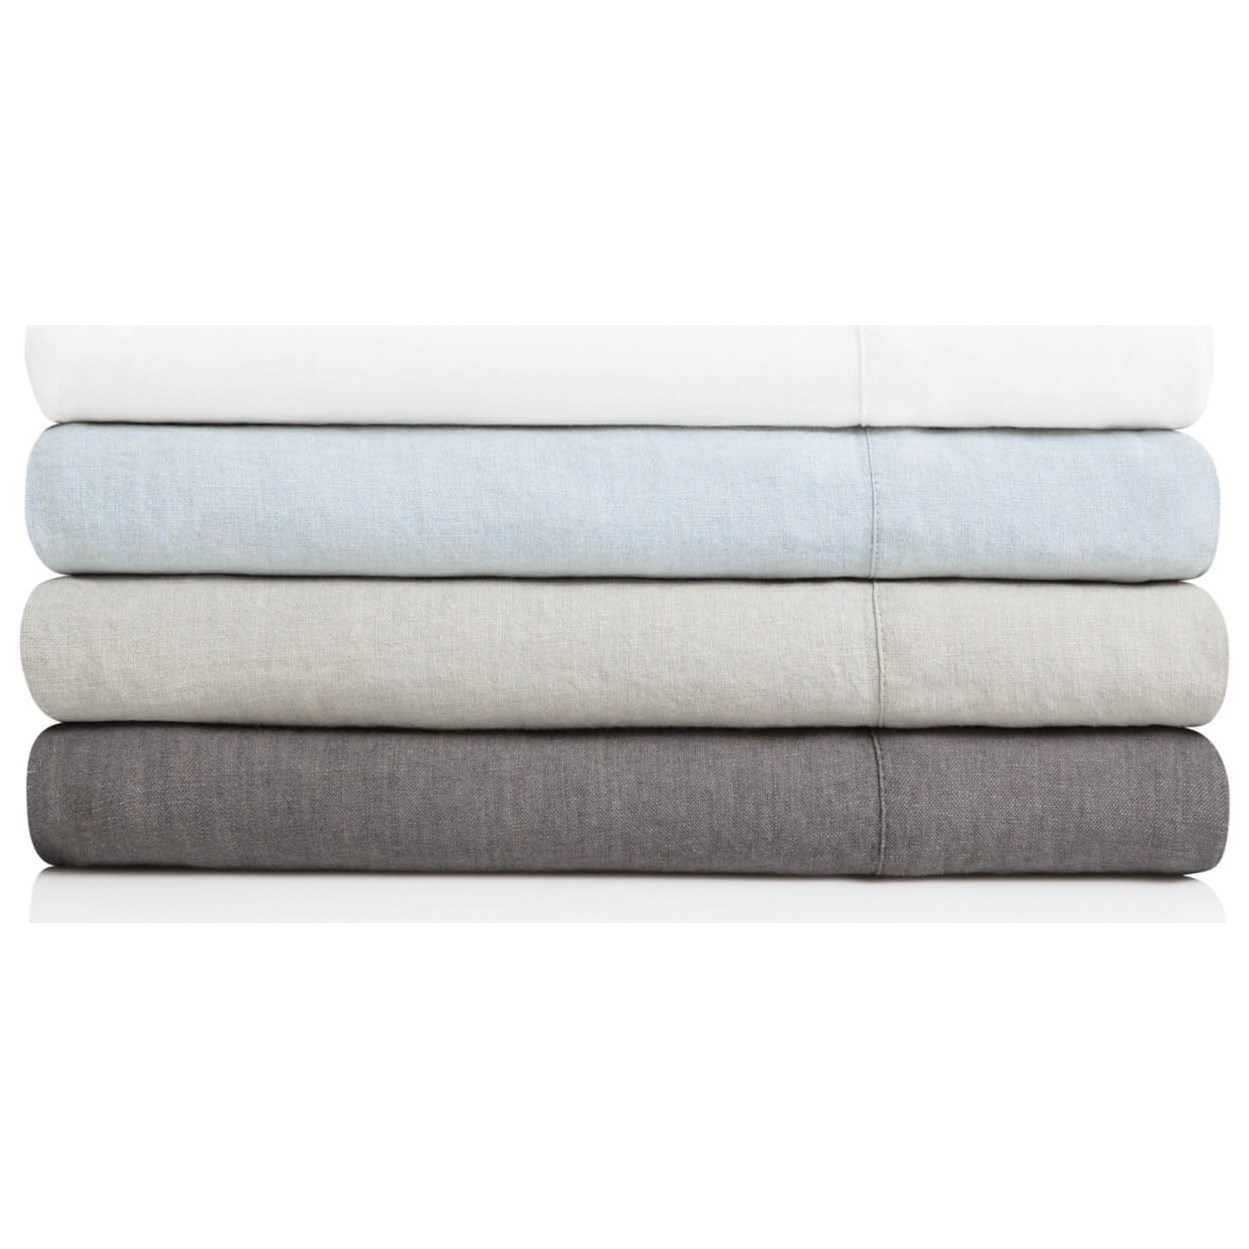 Malouf French Linen King Pillowcases - Item Number: WO162KKWHLC